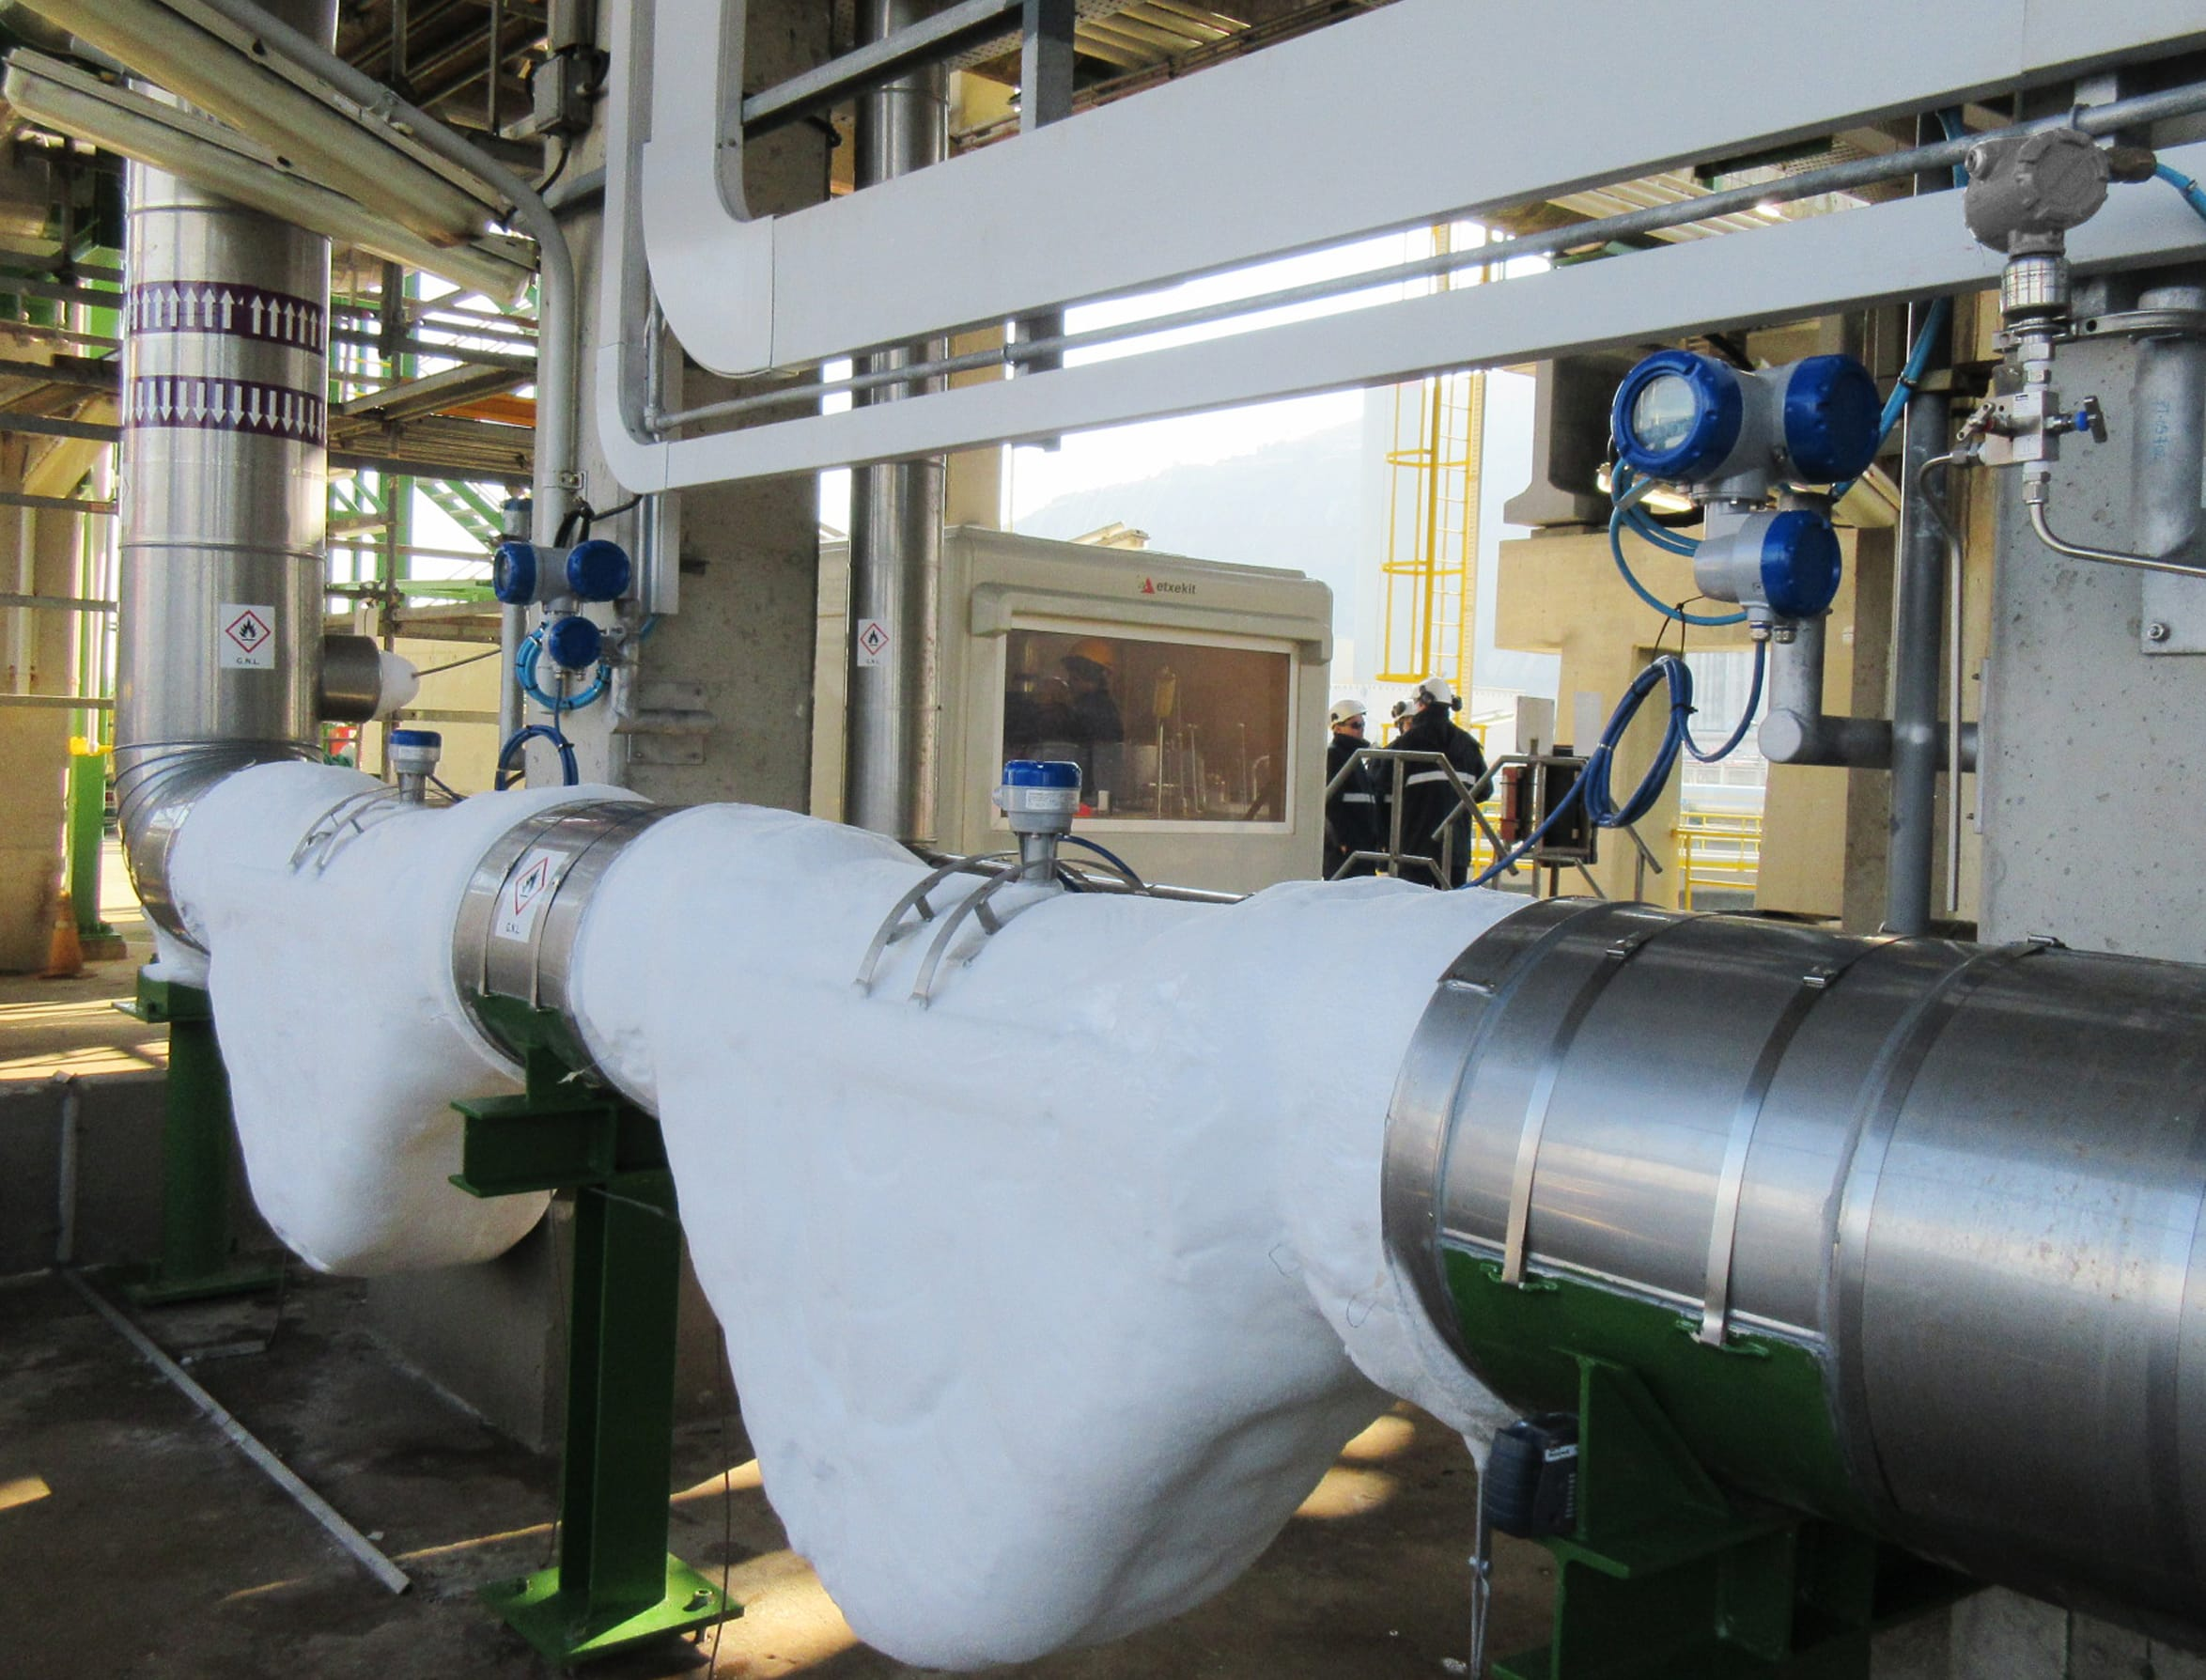 Custody transfer metering system for LNG in a up and offloading process